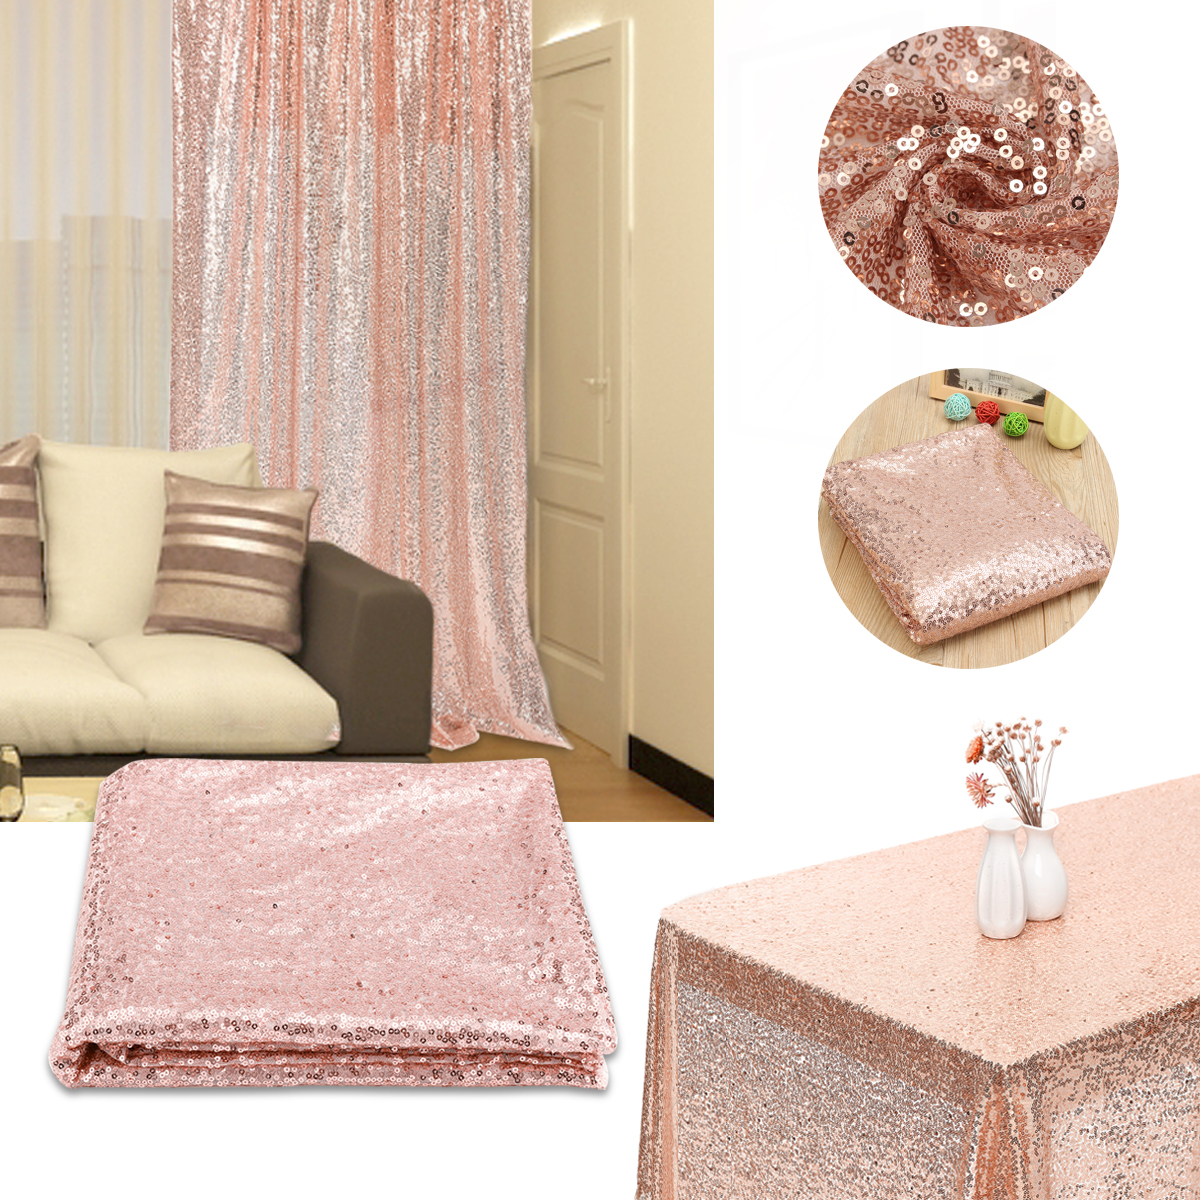 7x7FT Sequin Glitter Table Cloth Cover Curtain Wedding/Party/Banquet Decor Photography Background Backdrop Rose Gold Silver Champagne